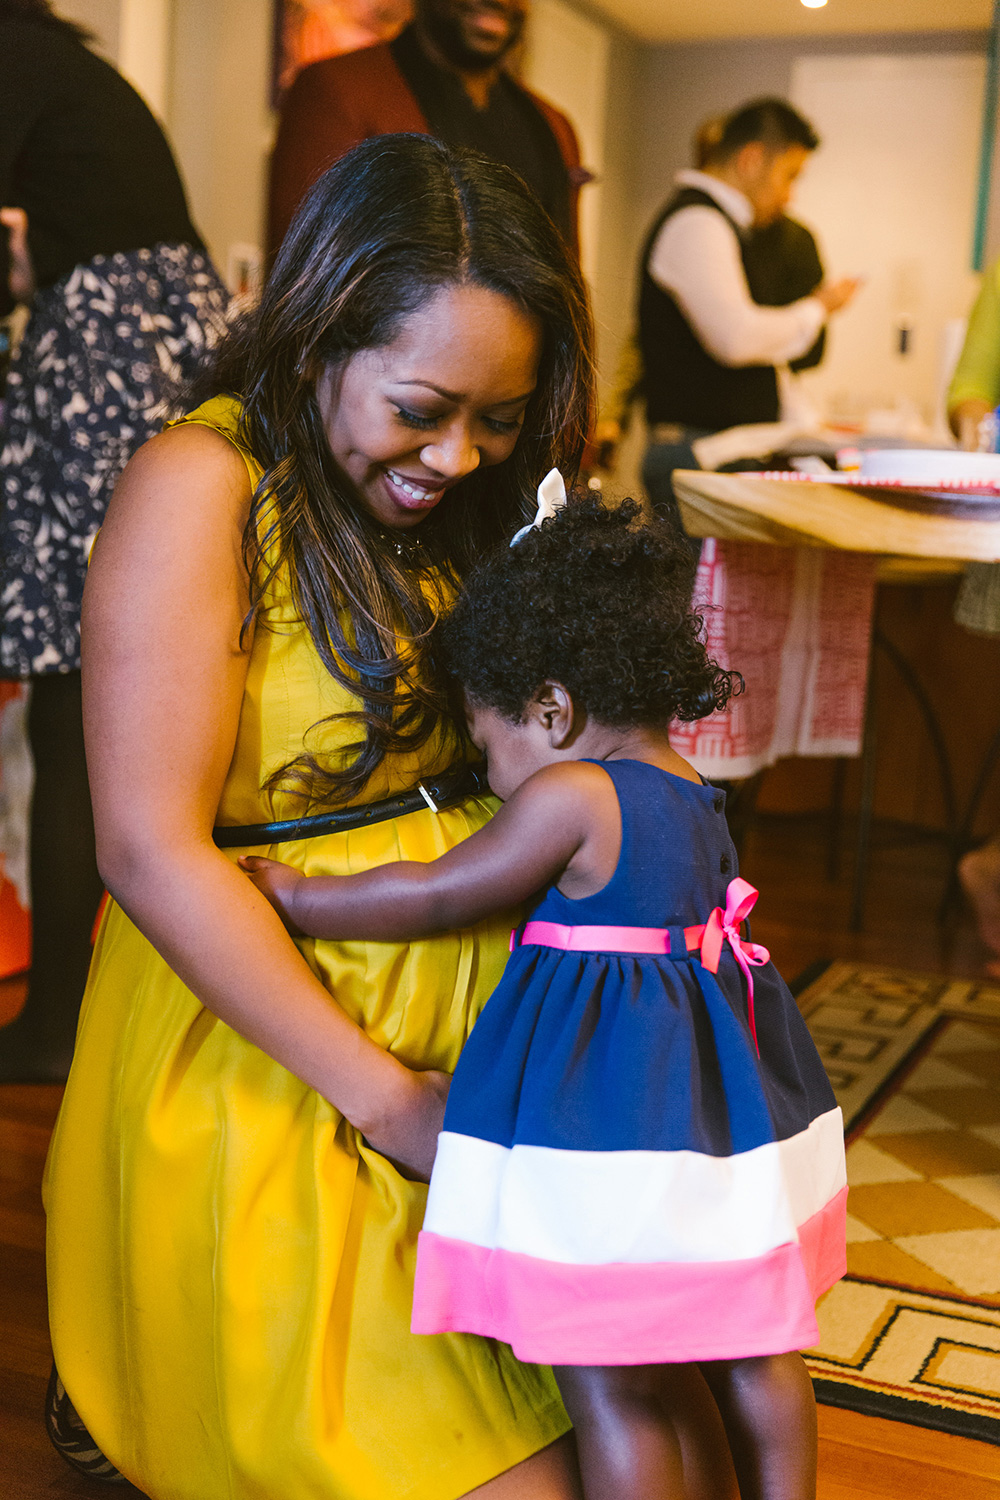 WEB_2015_April_BabyShower_EuniceDockery_0620.jpg